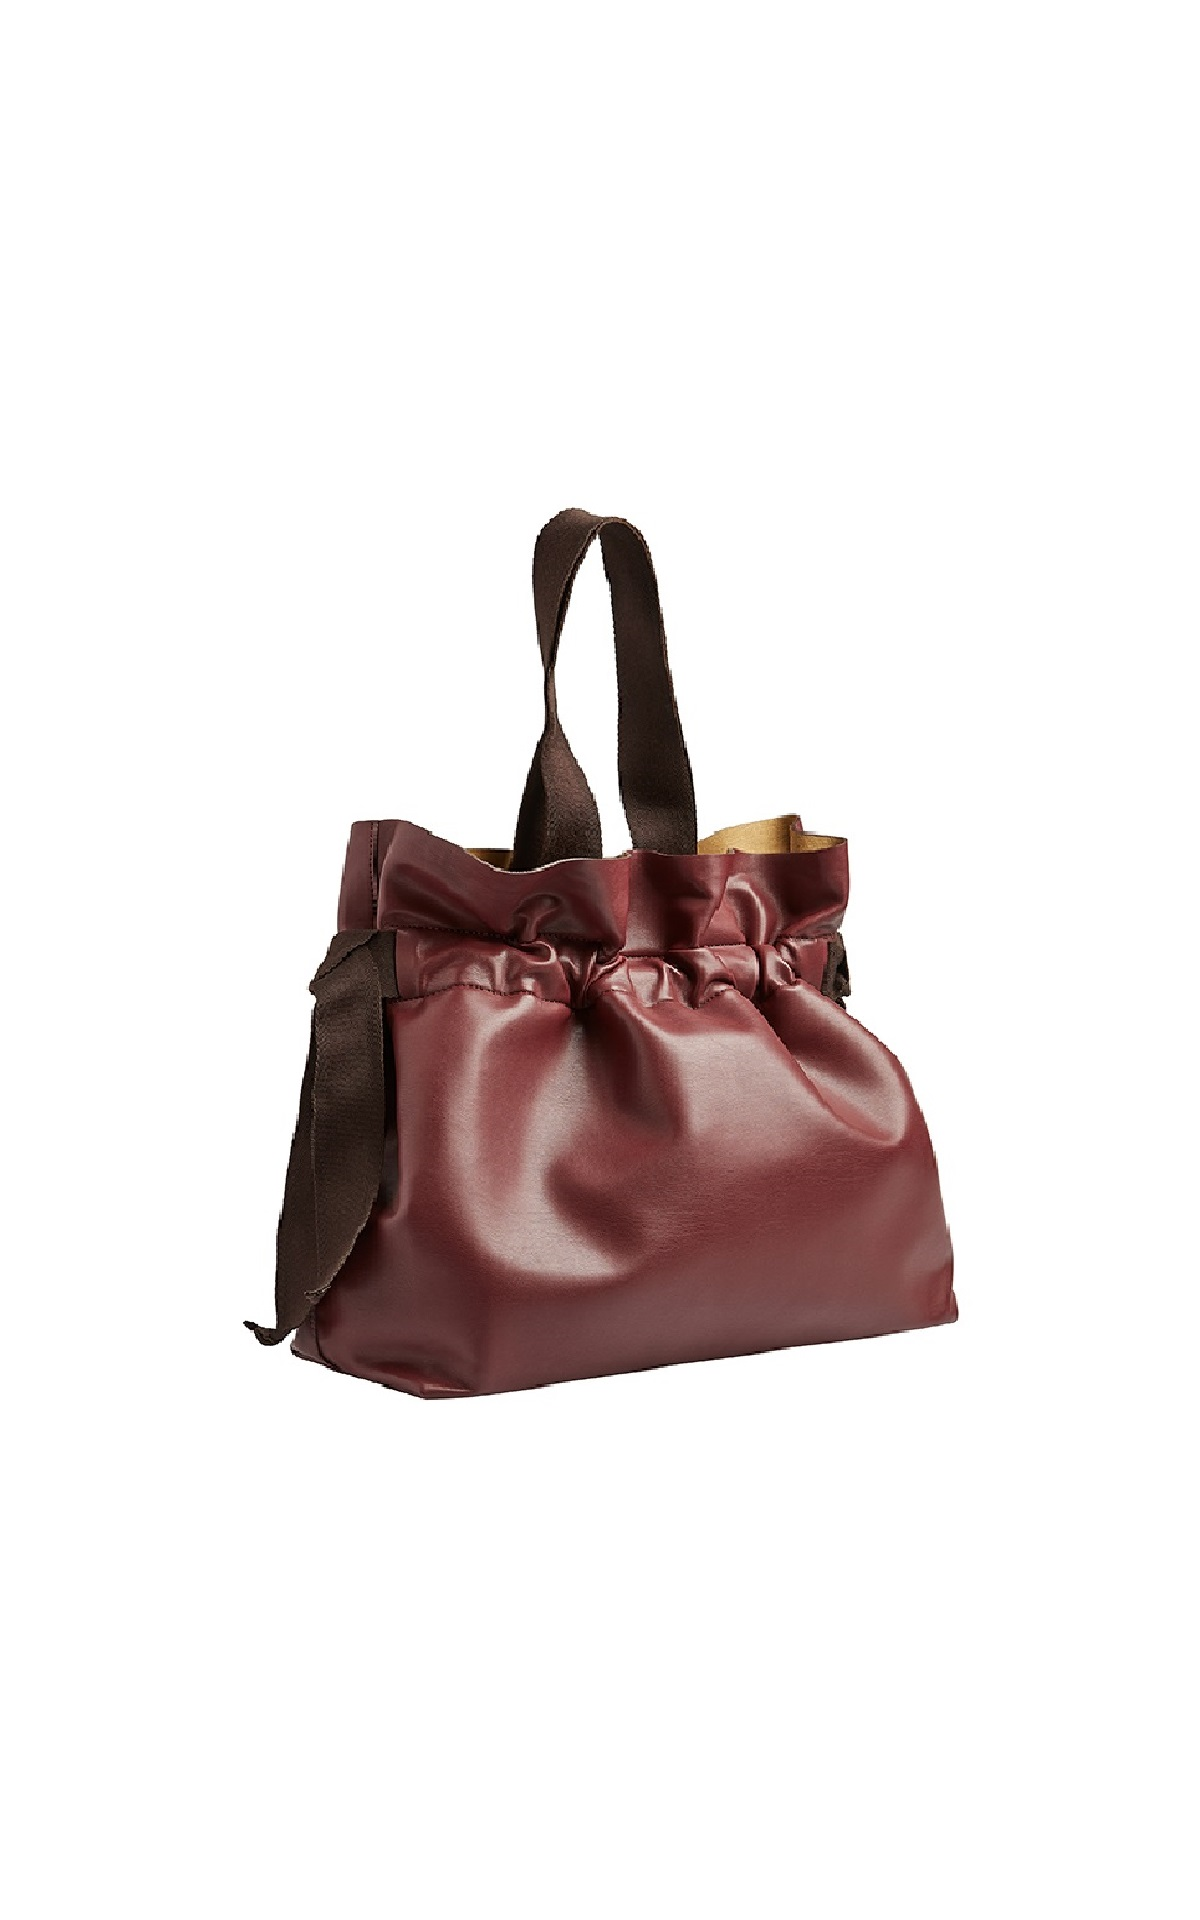 Burgundy leather bag Adolfo Dominguez